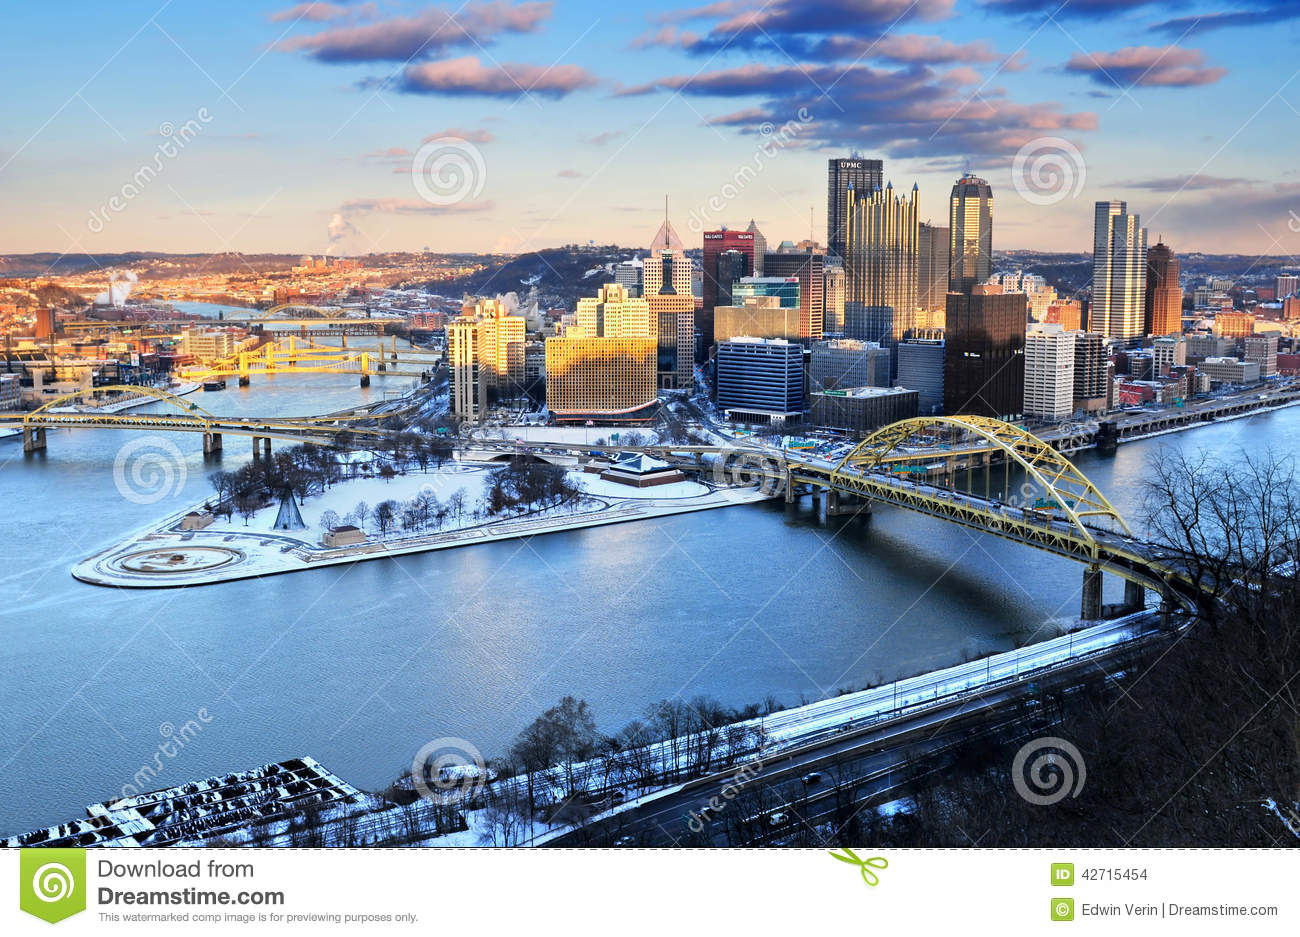 pittsburgh pennsylvania usa editorial stock image image of funicular place 42715454. Black Bedroom Furniture Sets. Home Design Ideas